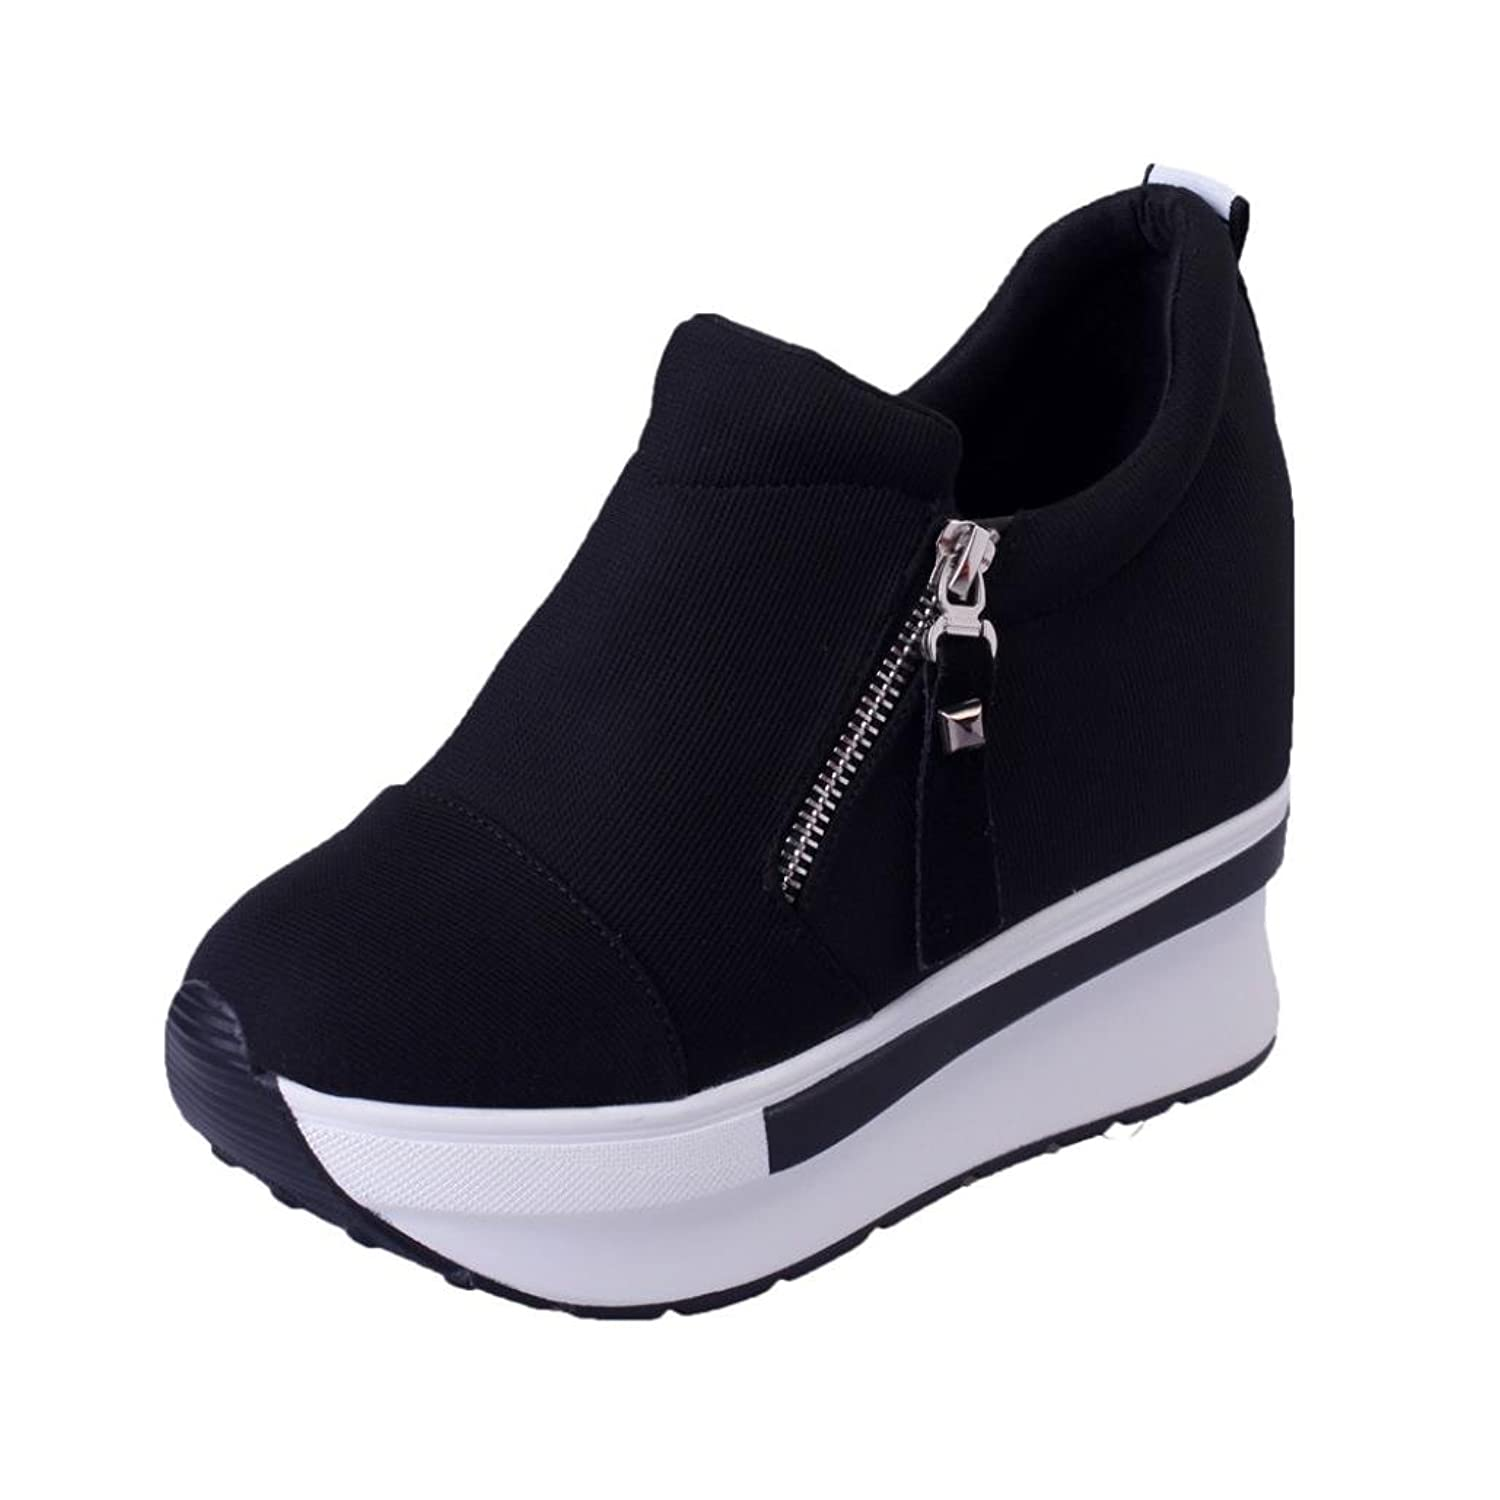 cdf60e14588 high-quality Sikye Women s High Platform Loafer Shoes Casual Hidden Heel  Canvas Sneakers Slip On